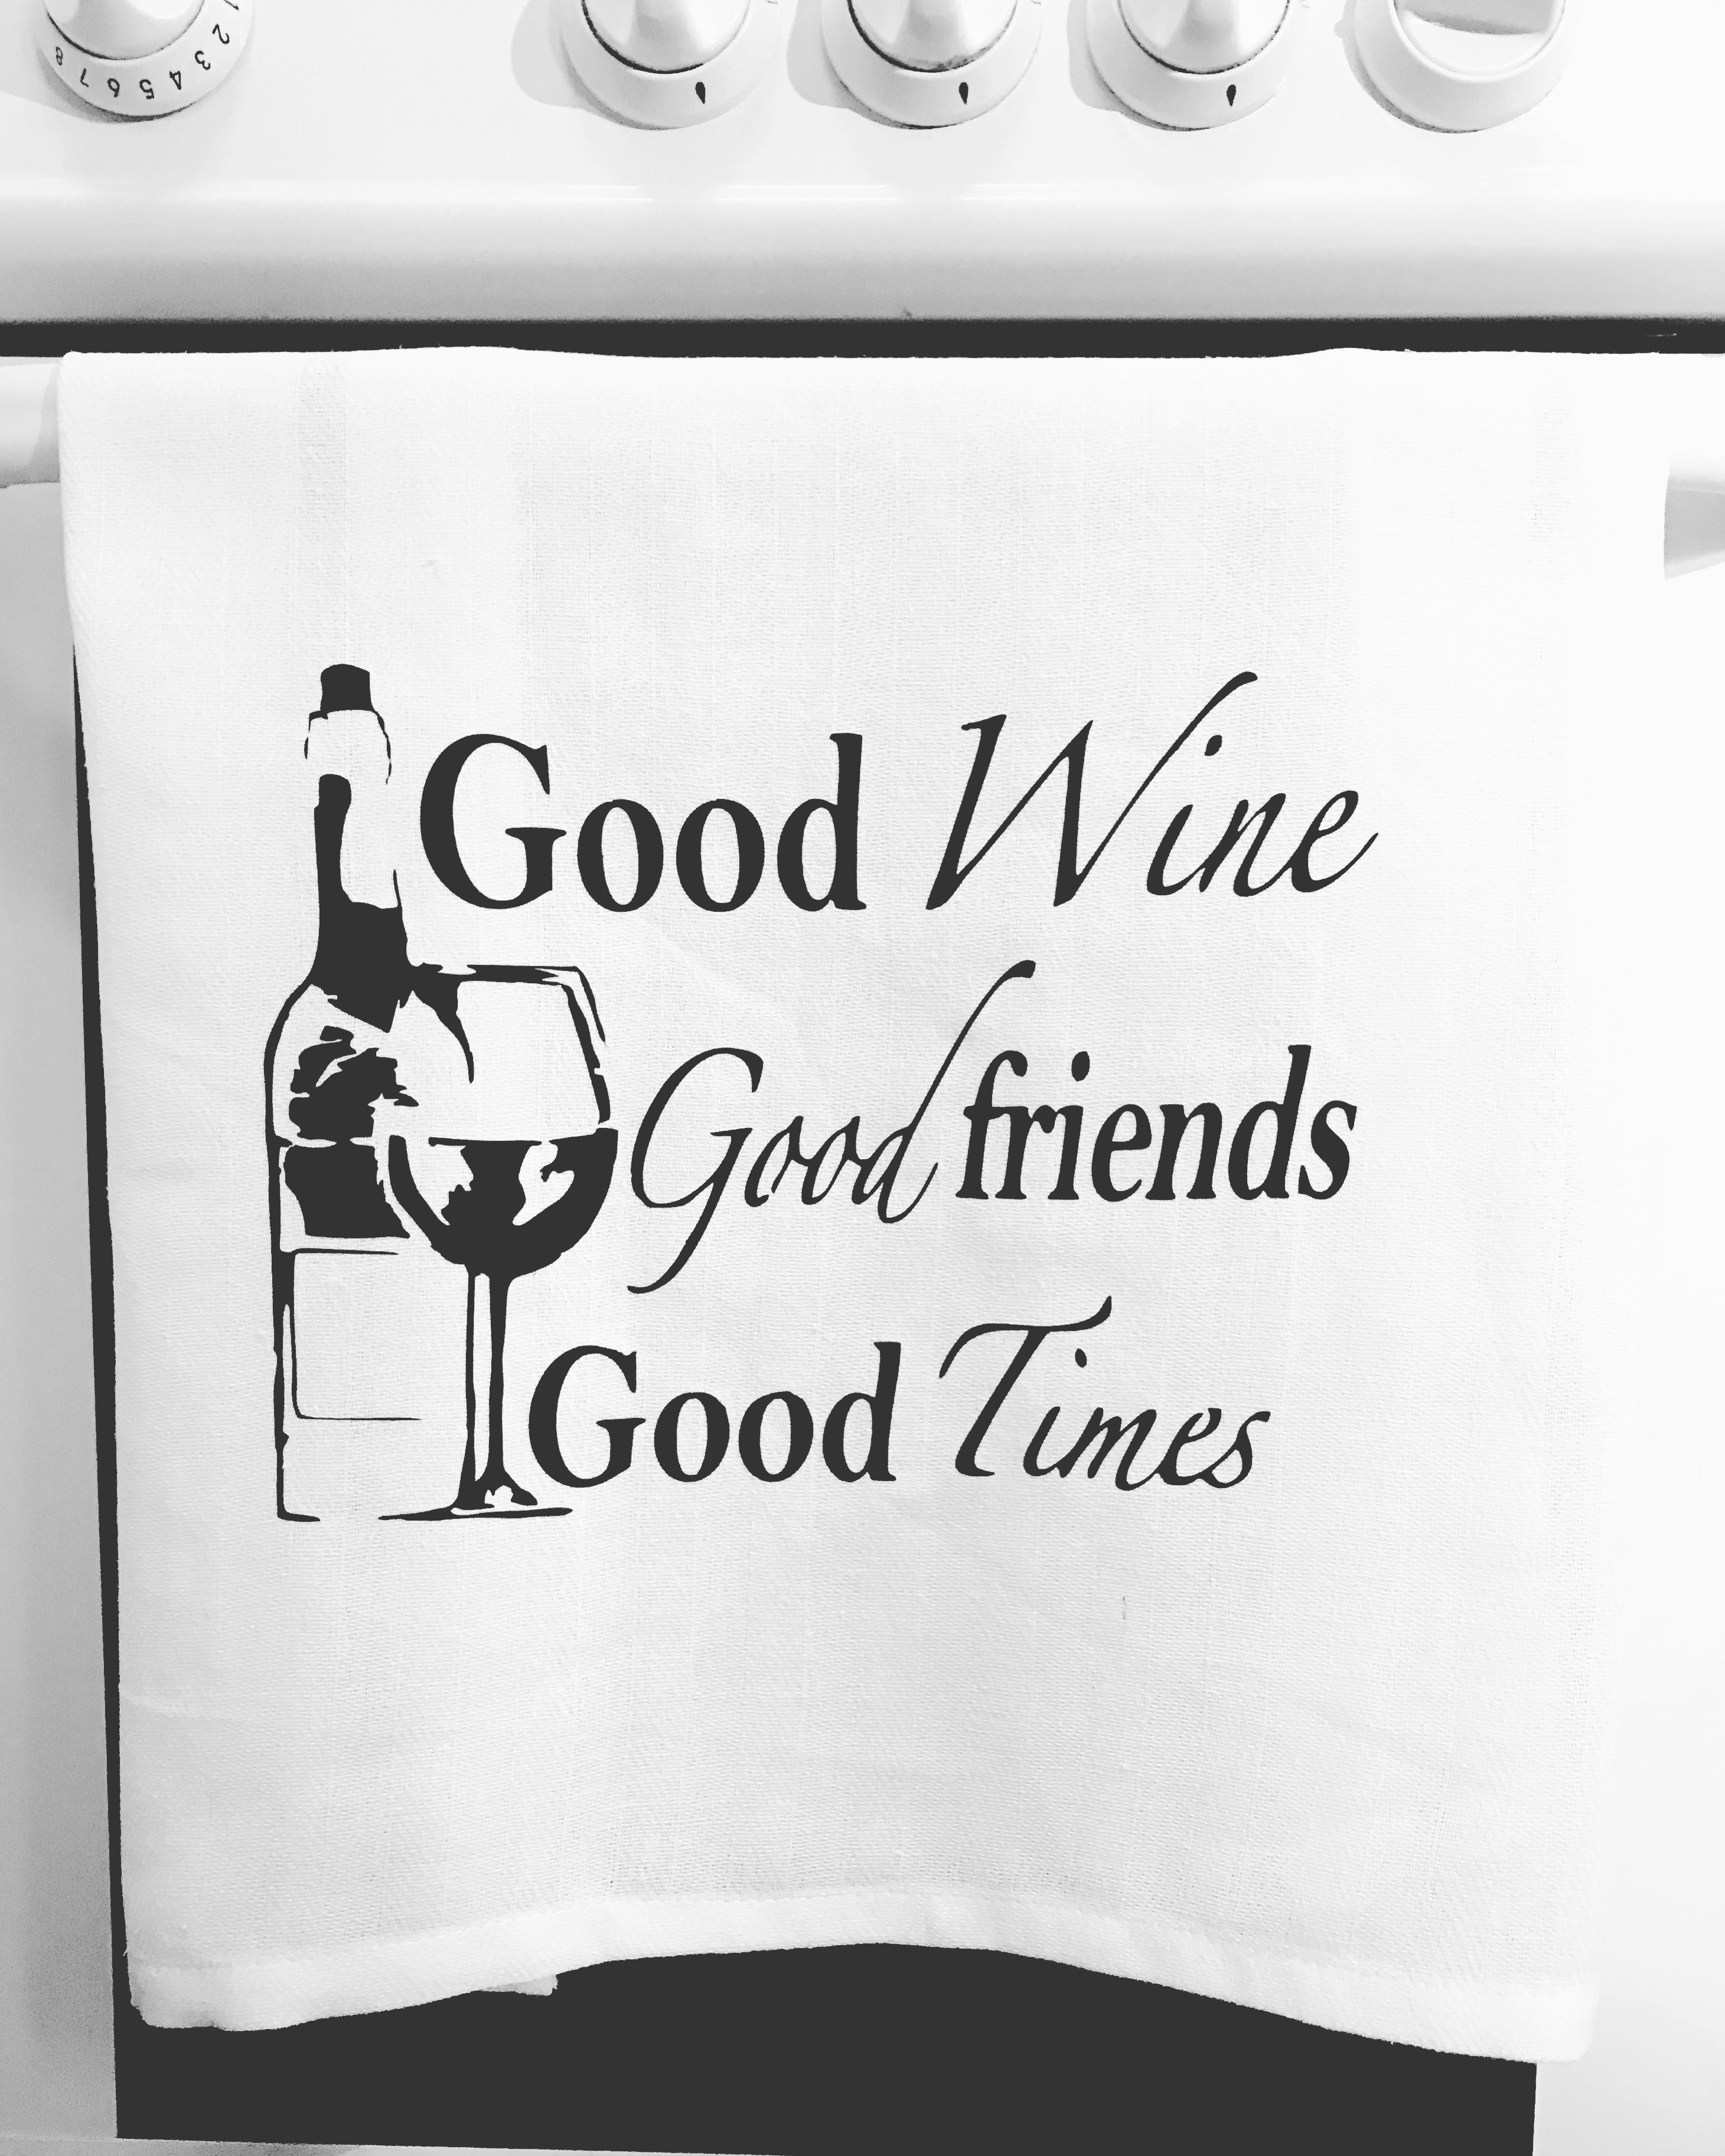 Good Wine Good friends Good Times kitchen tea towel-kitchen towels-DiamondsKT